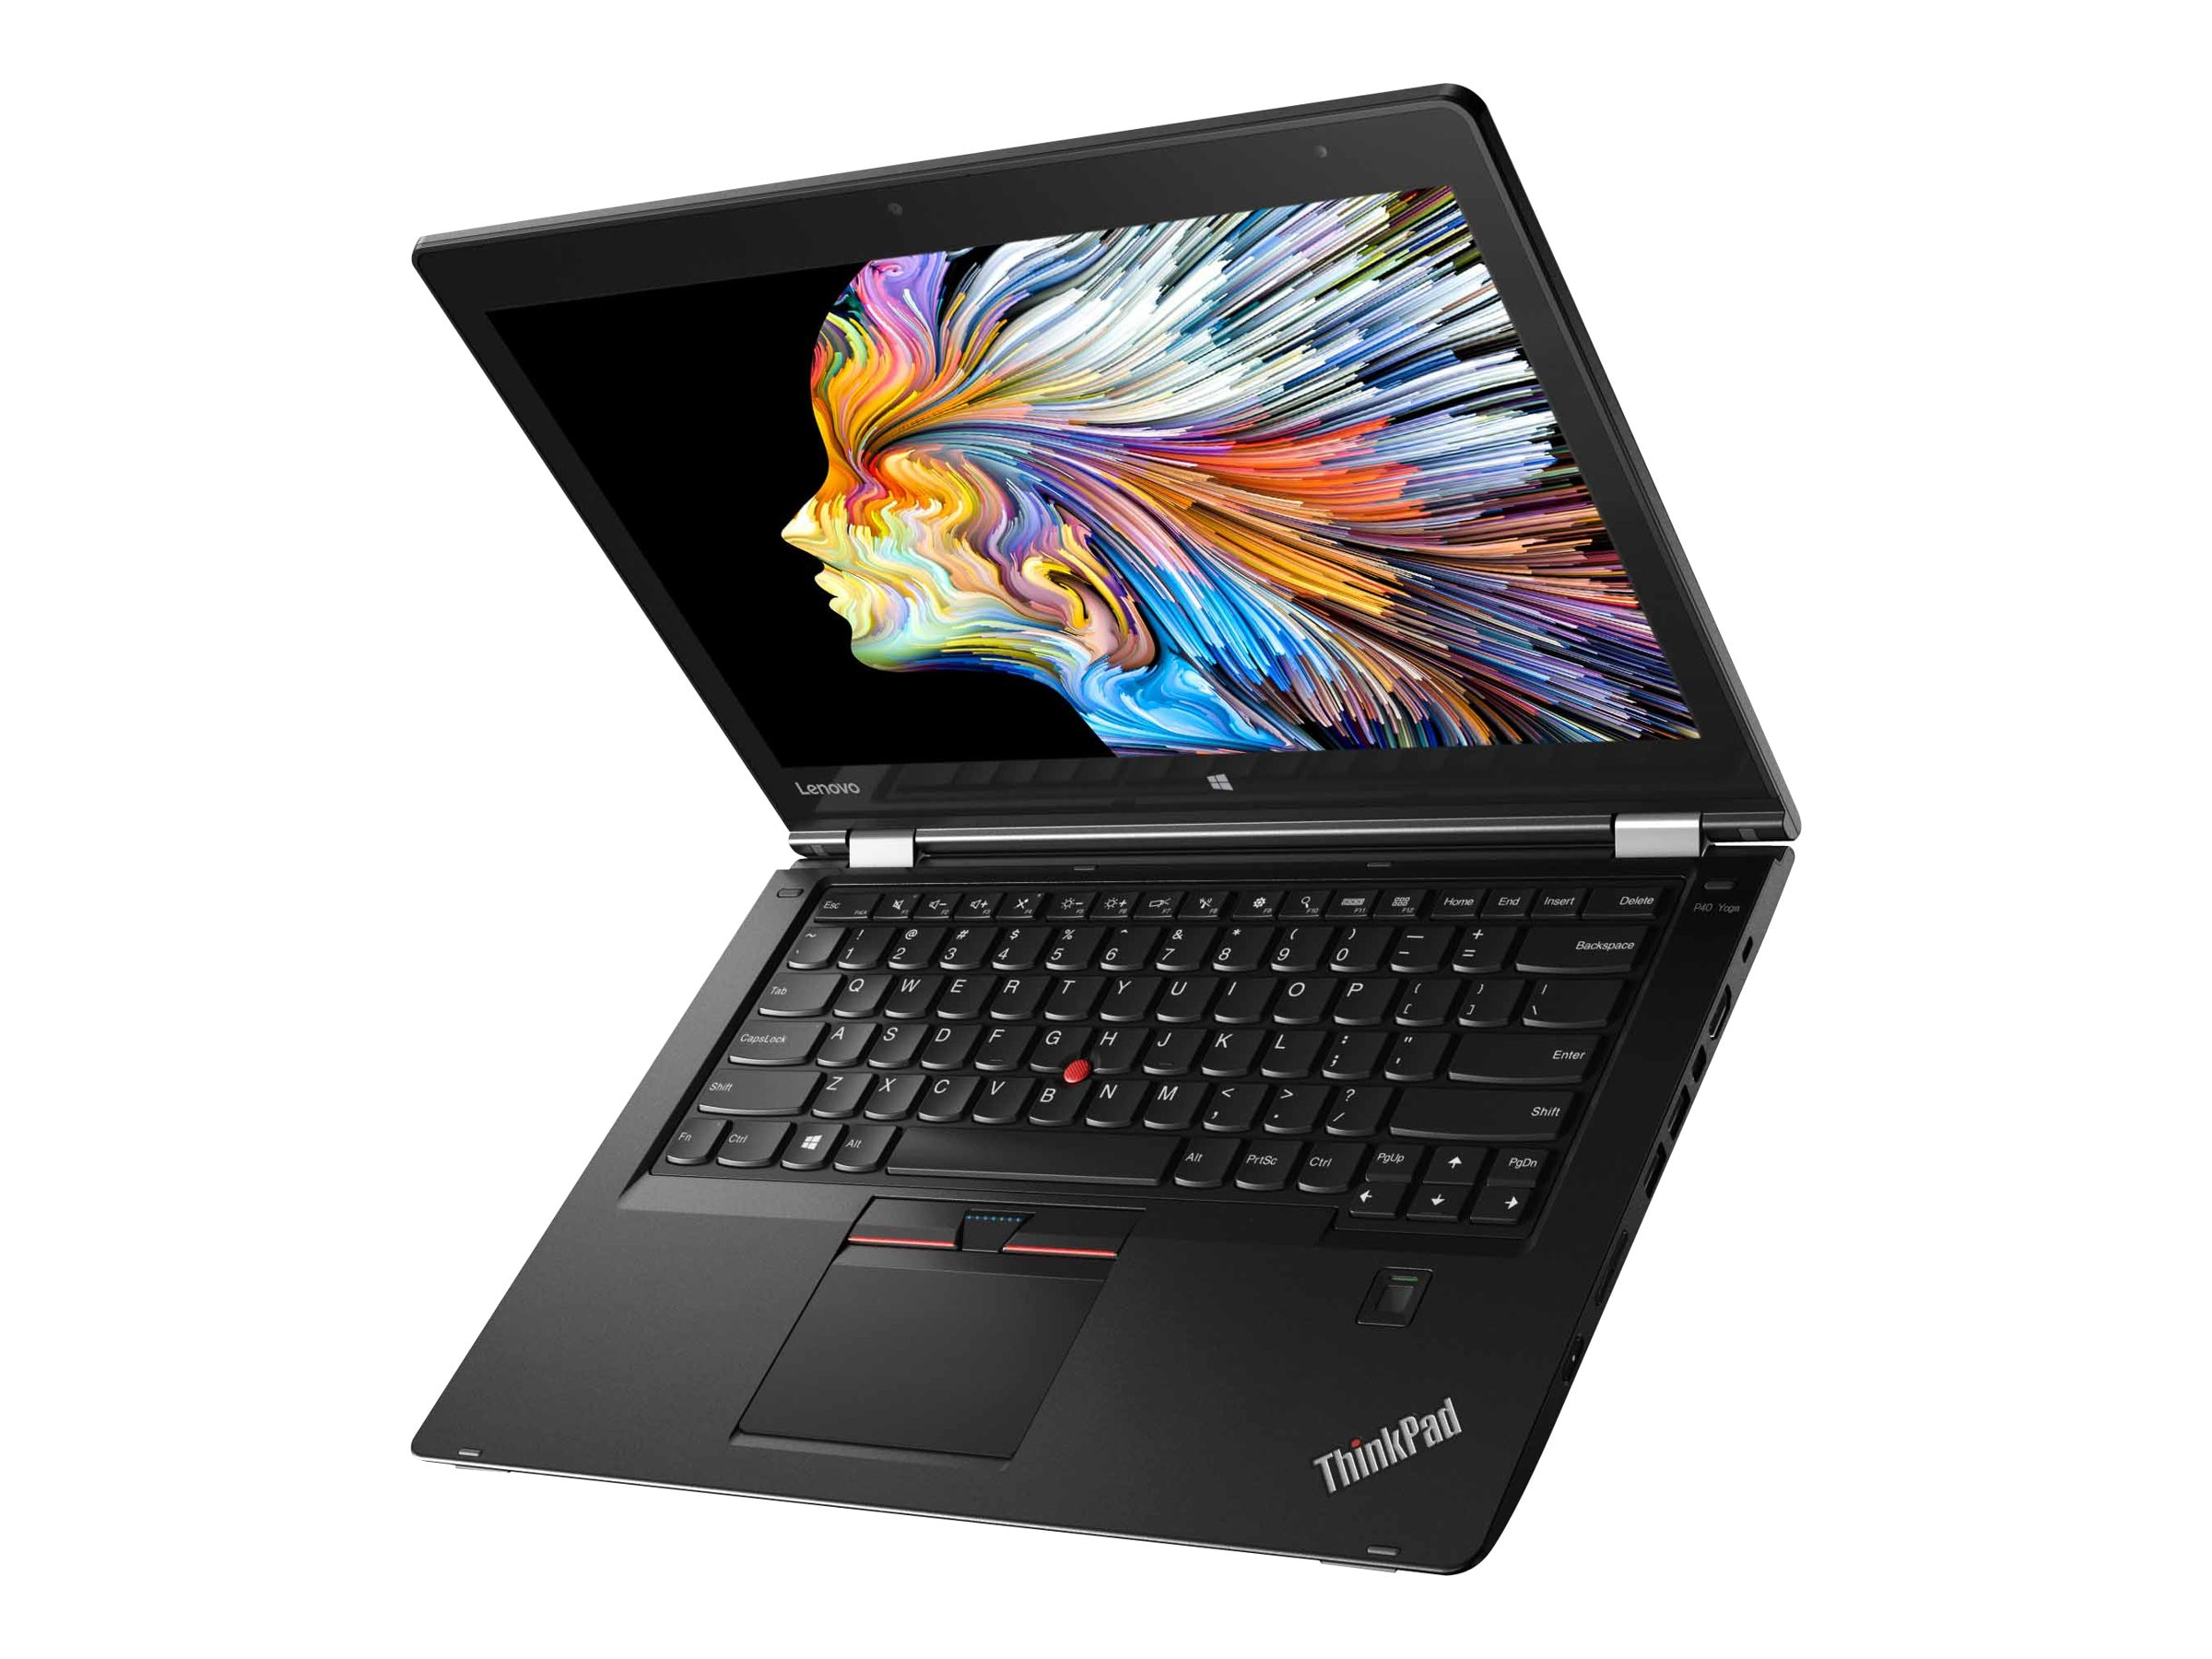 Lenovo TopSeller ThinkPad P40 Yoga Core i7-6600U 2.6GHz 16GB 512GB SSD ac BT FR WC Pen 14 WQHD MT W10P64, 20GQ000EUS, 31188579, Workstations - Mobile